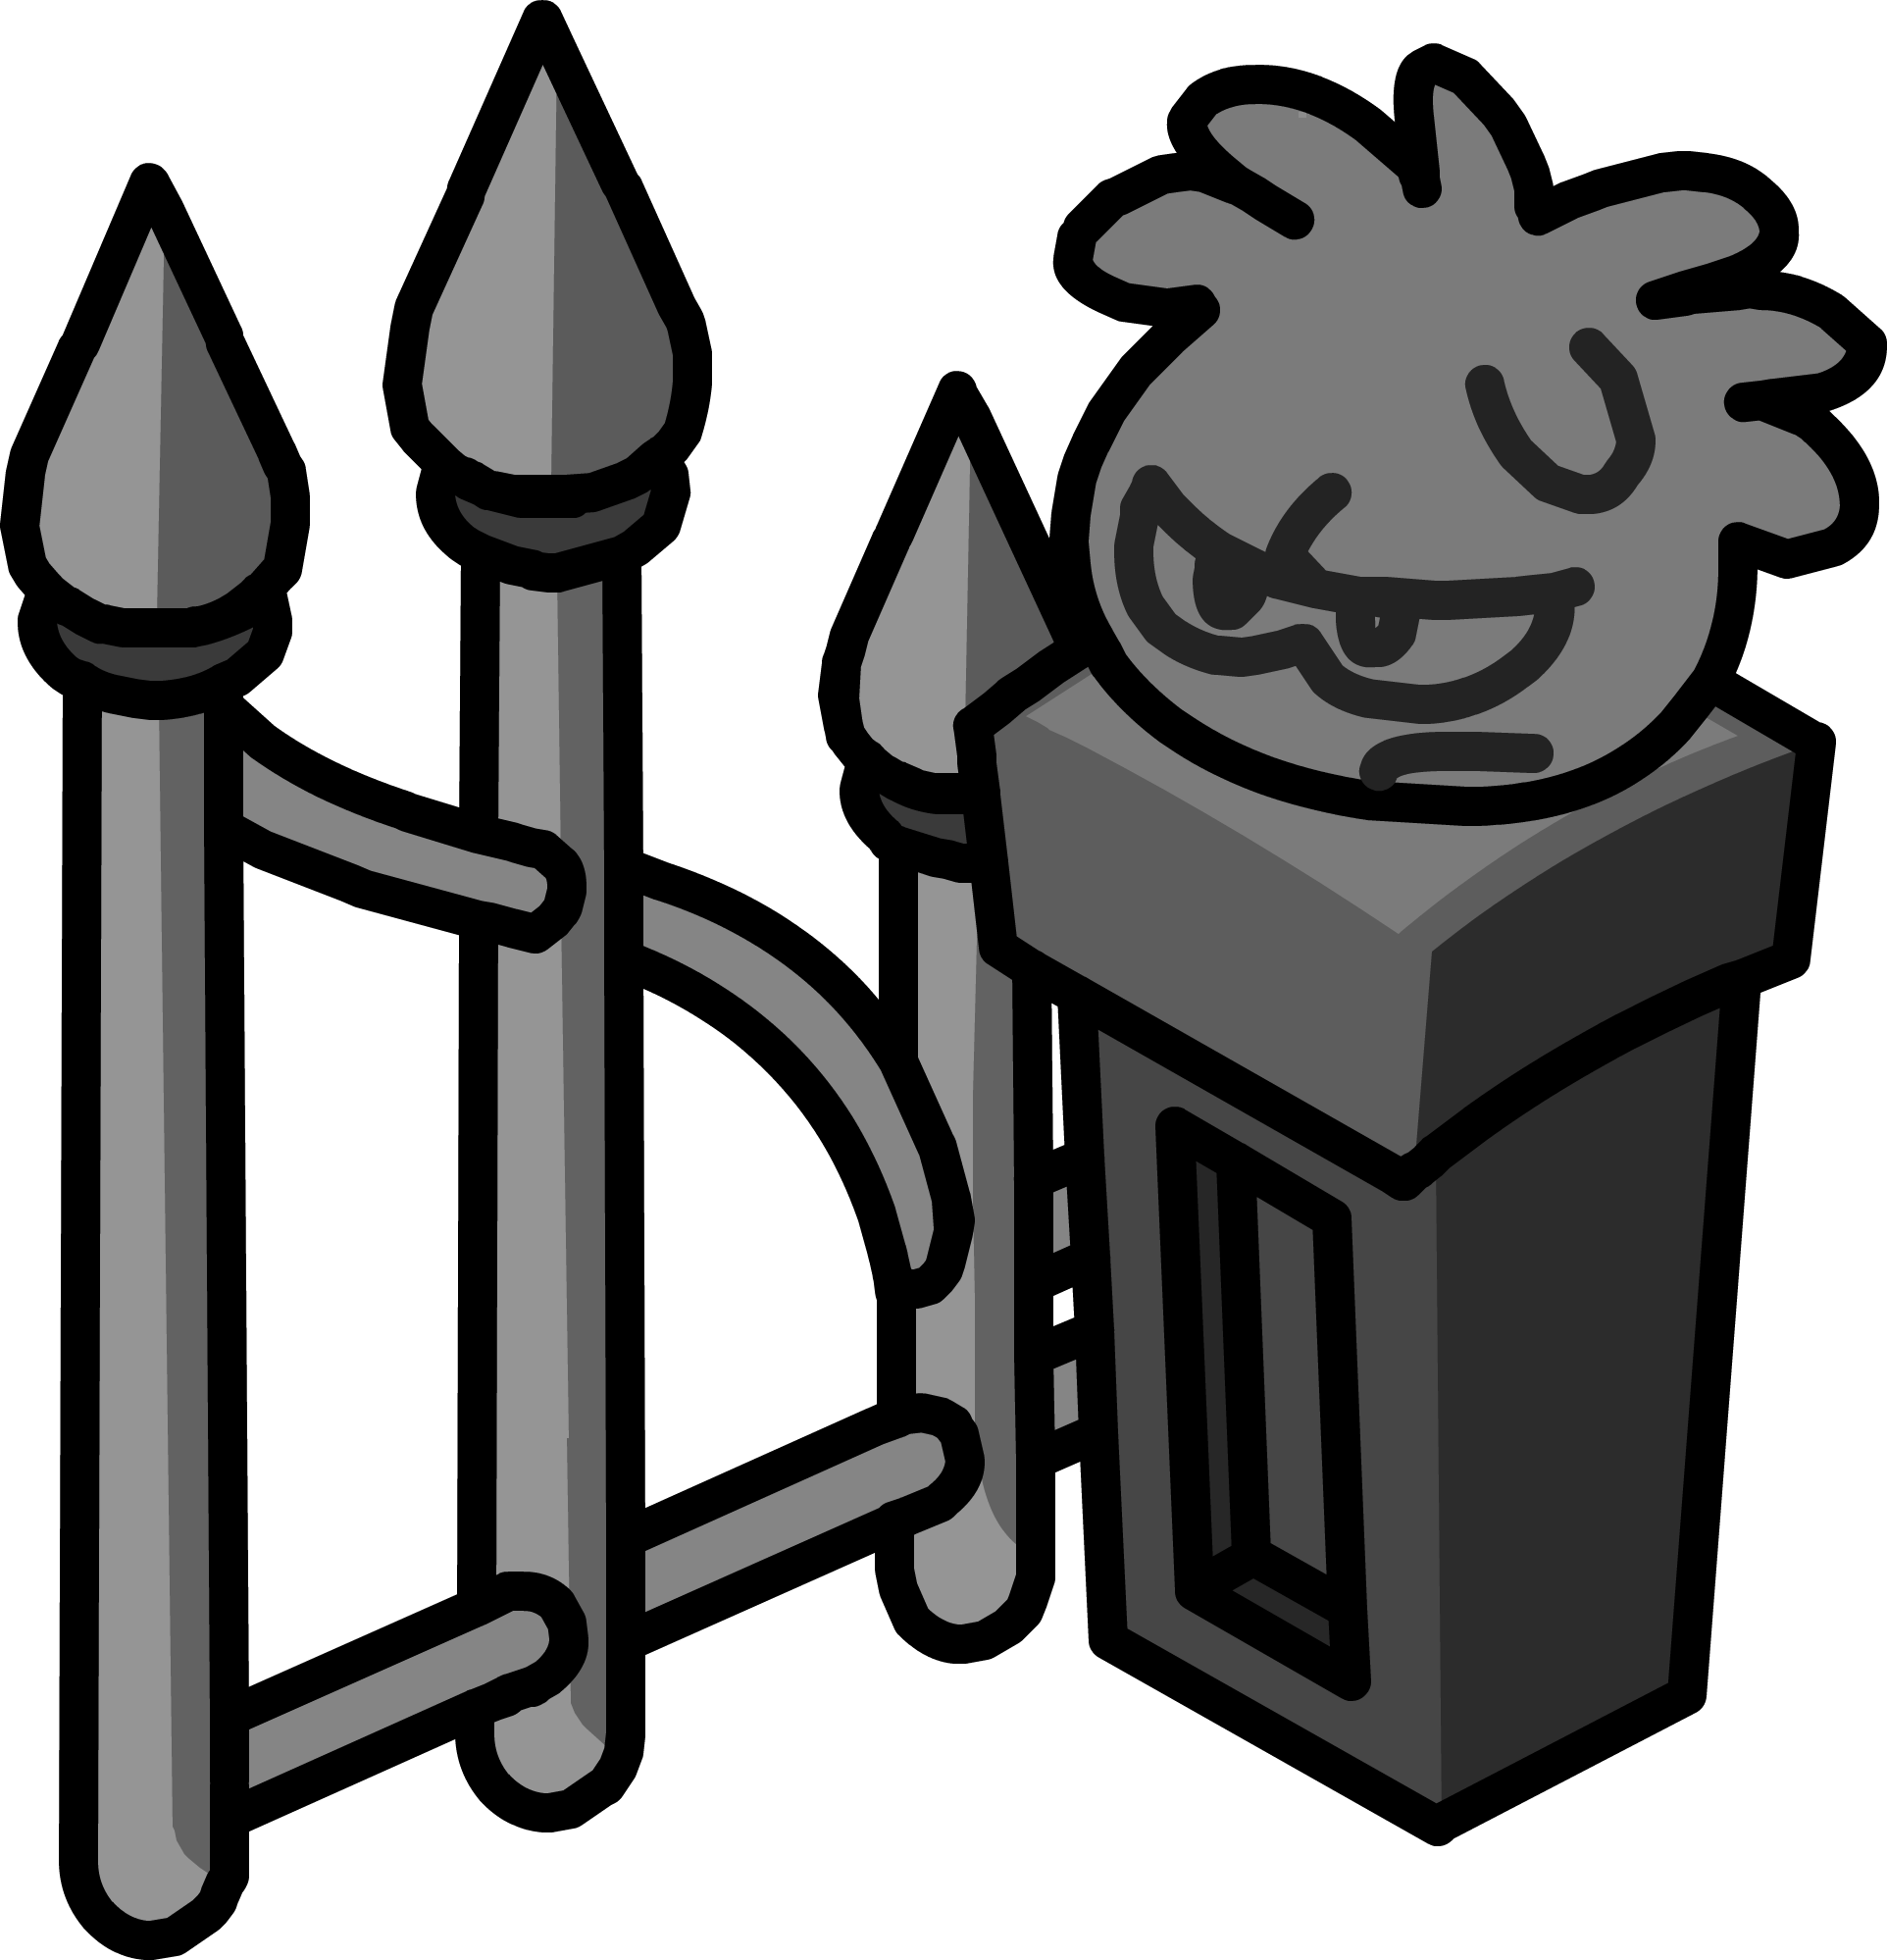 Gate clipart graveyard. Image icon png club